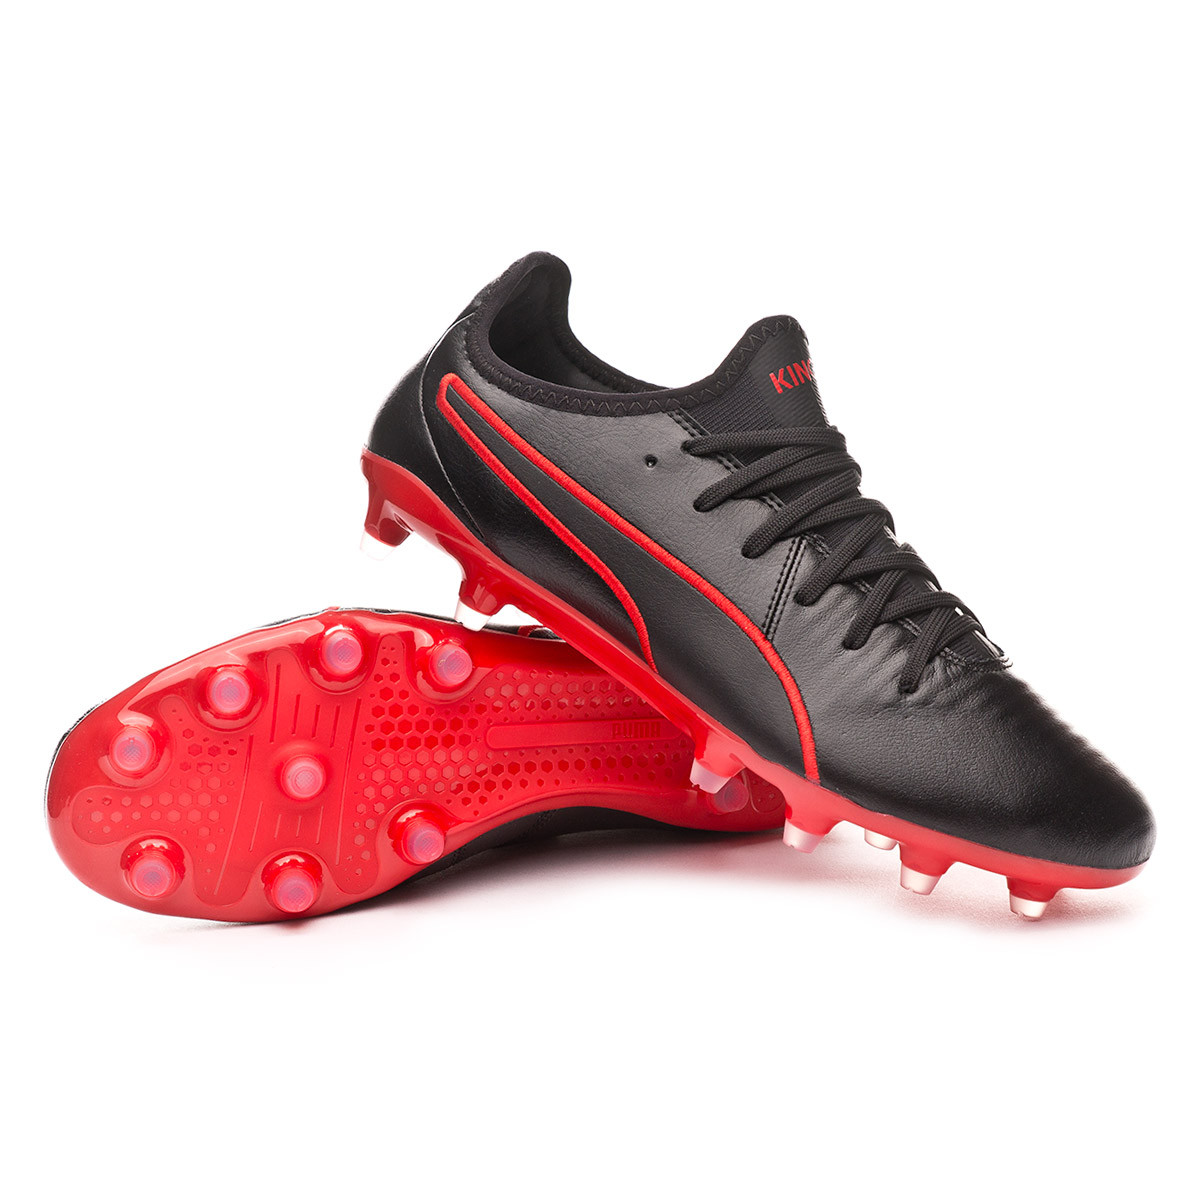 Puma King Pro FG Football Boots